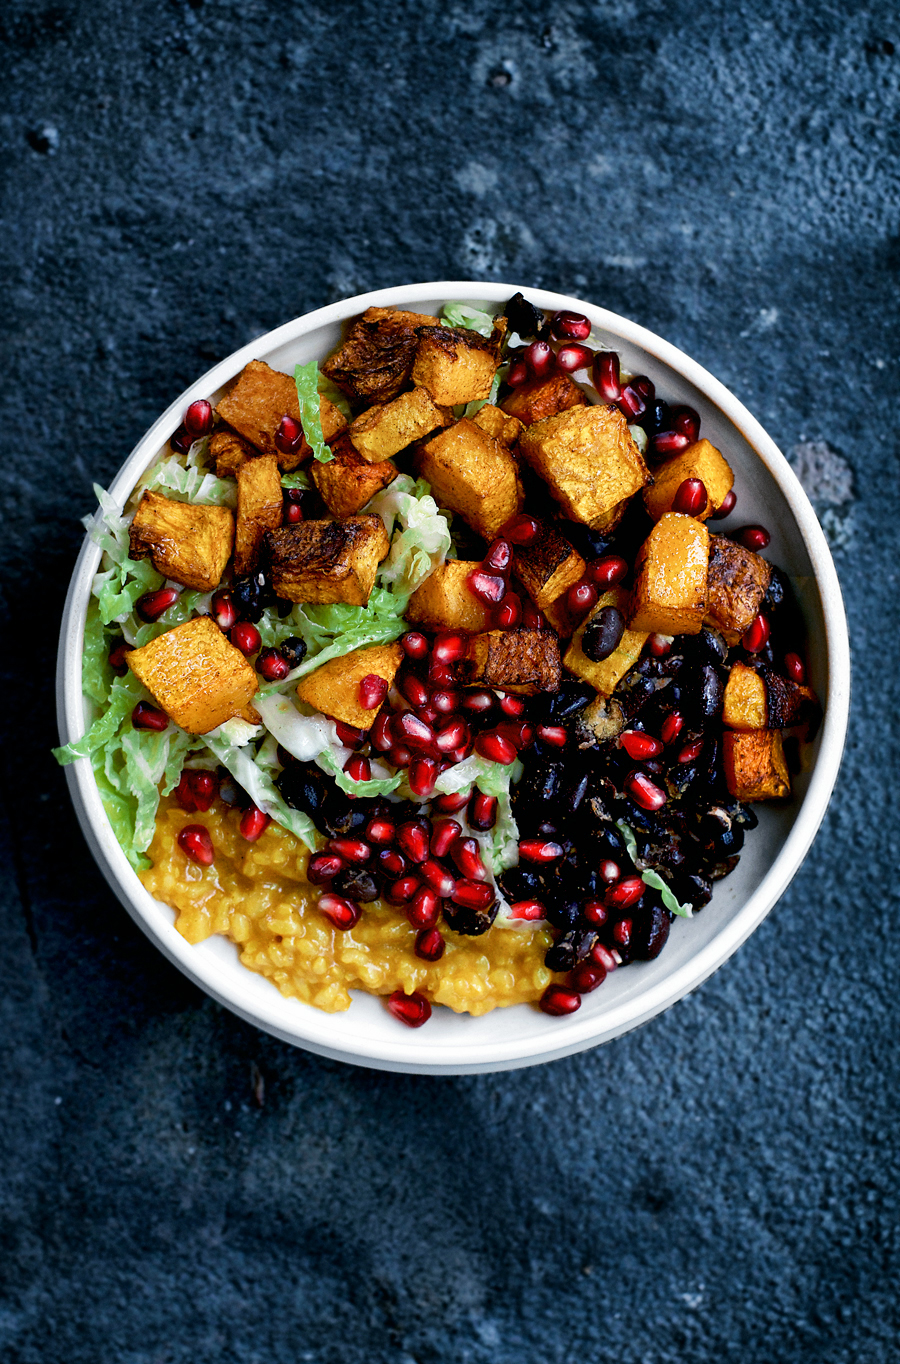 This vegan autumn bowl is filled with butternut squash, cabbage, pomegranate, and my favourite turmeric rice. Spicy, colourful, and simple, this is comfort food at its best.